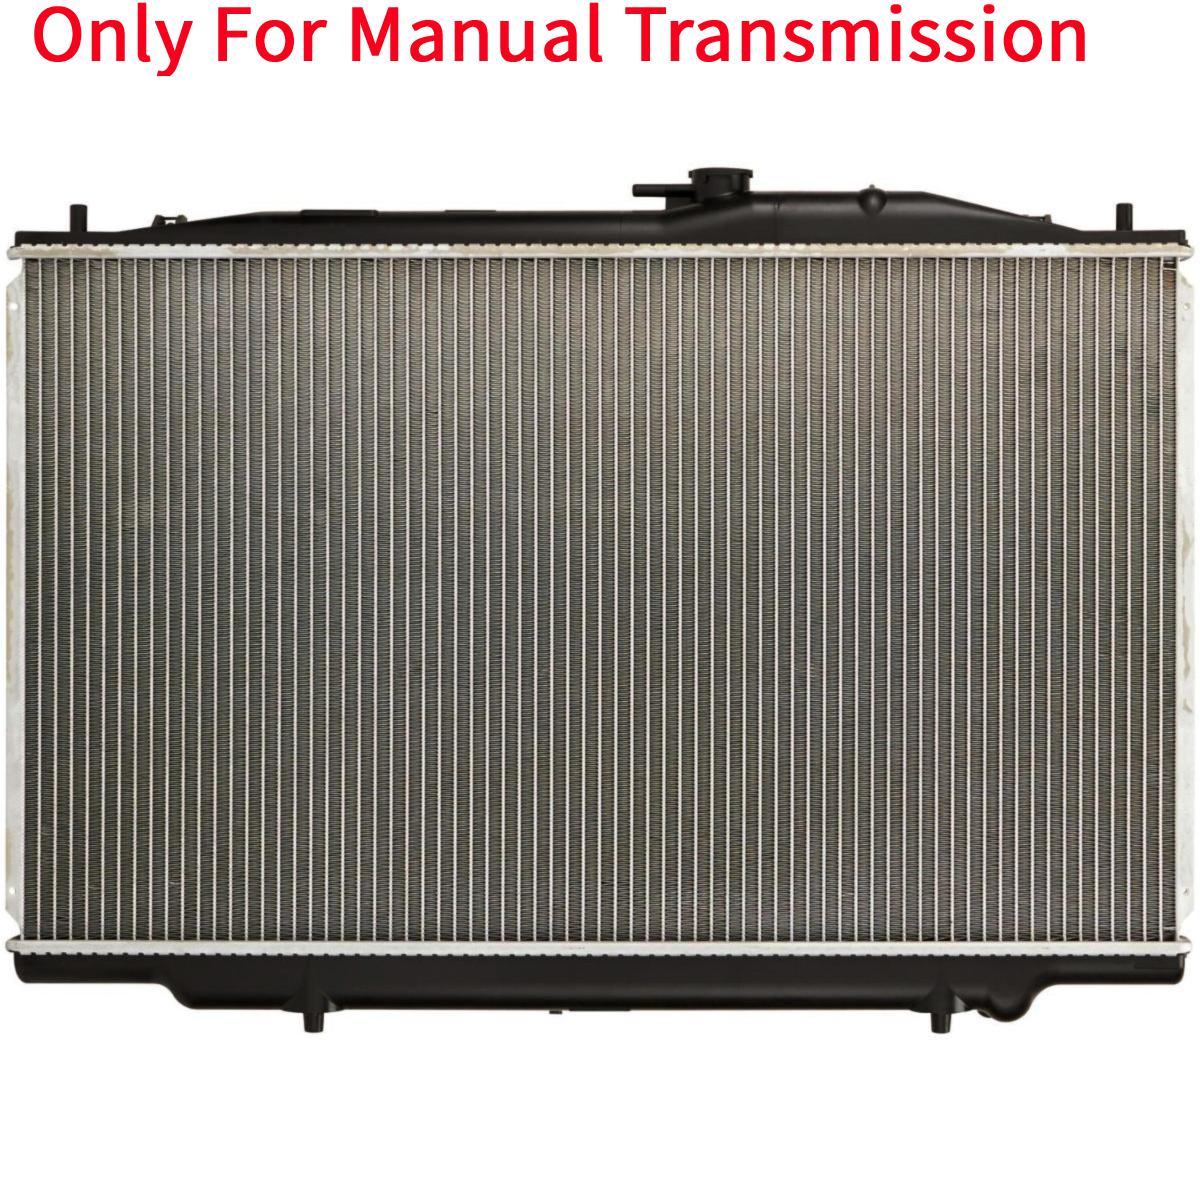 Manual MT Aluminum/Plastic Radiator 1 Row For 2004-2006